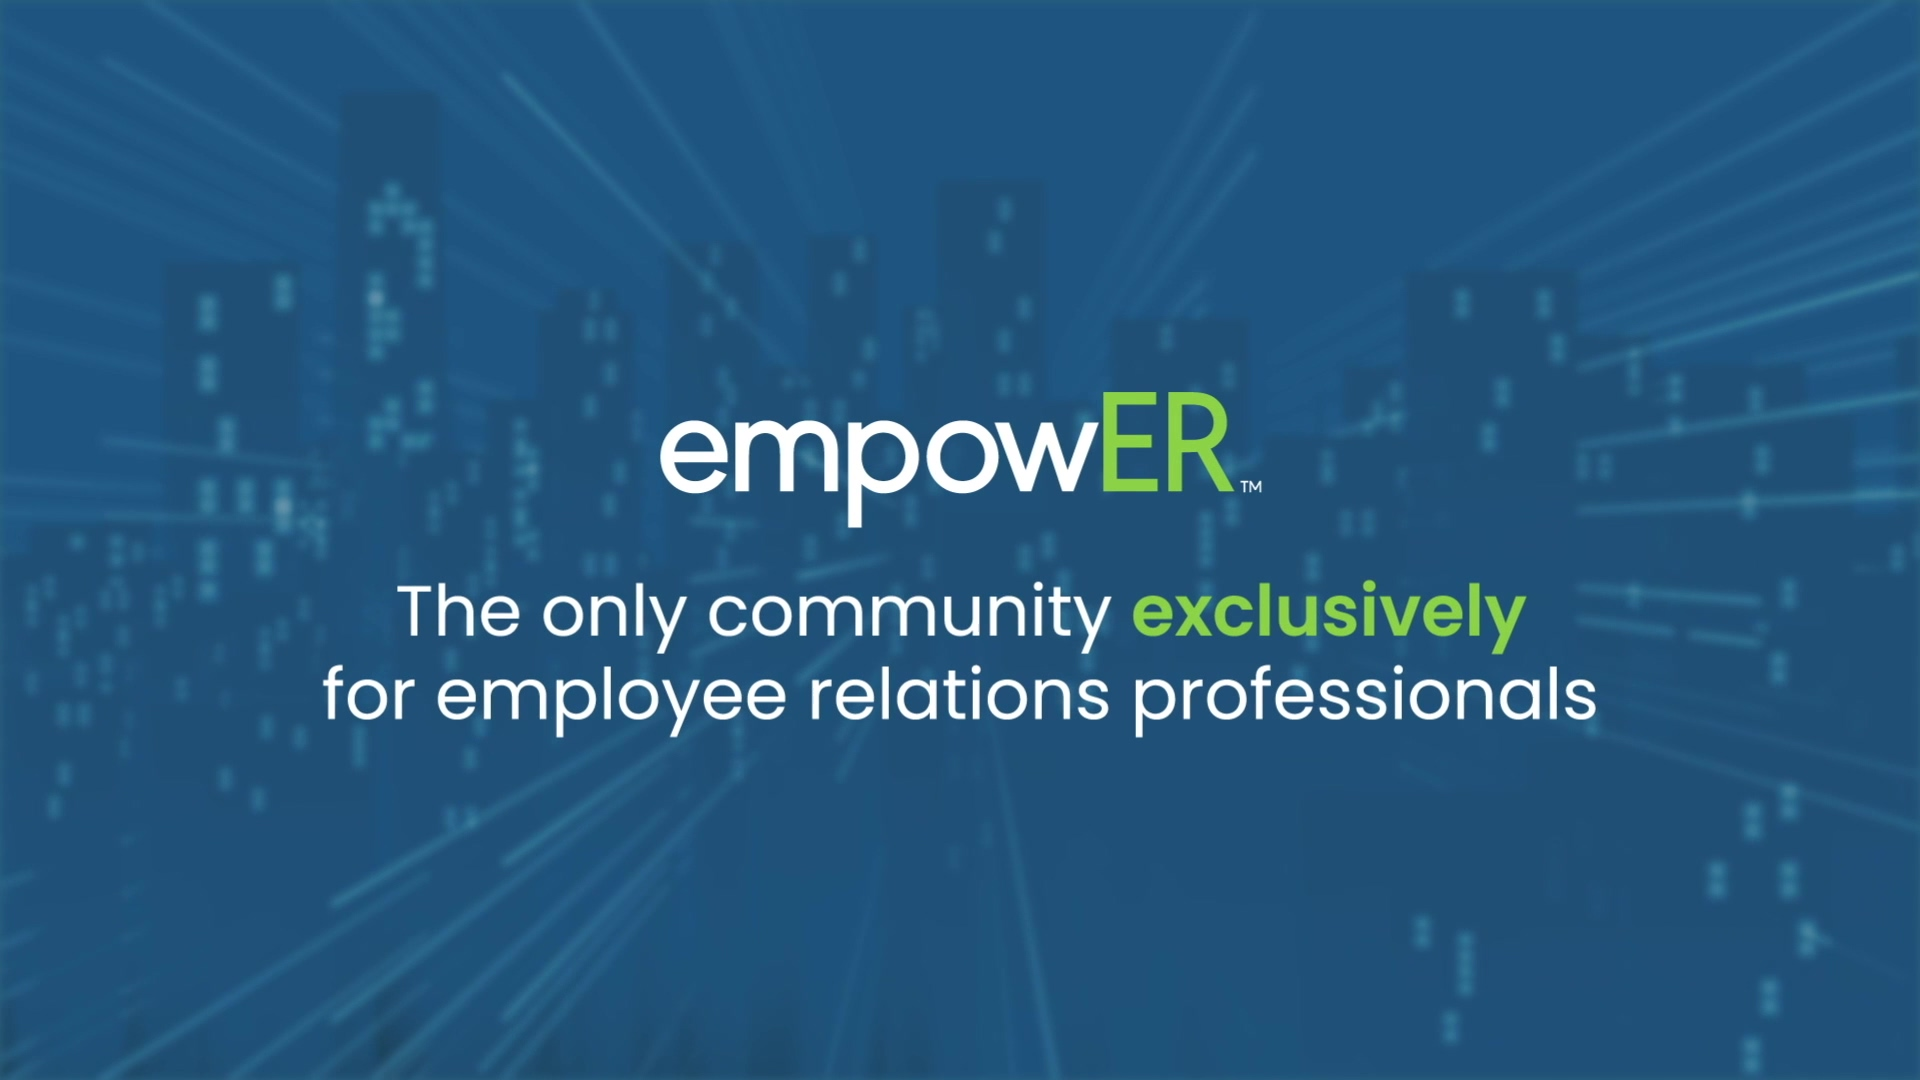 Ovation Solutions - HR Acuity empowER - FINAL